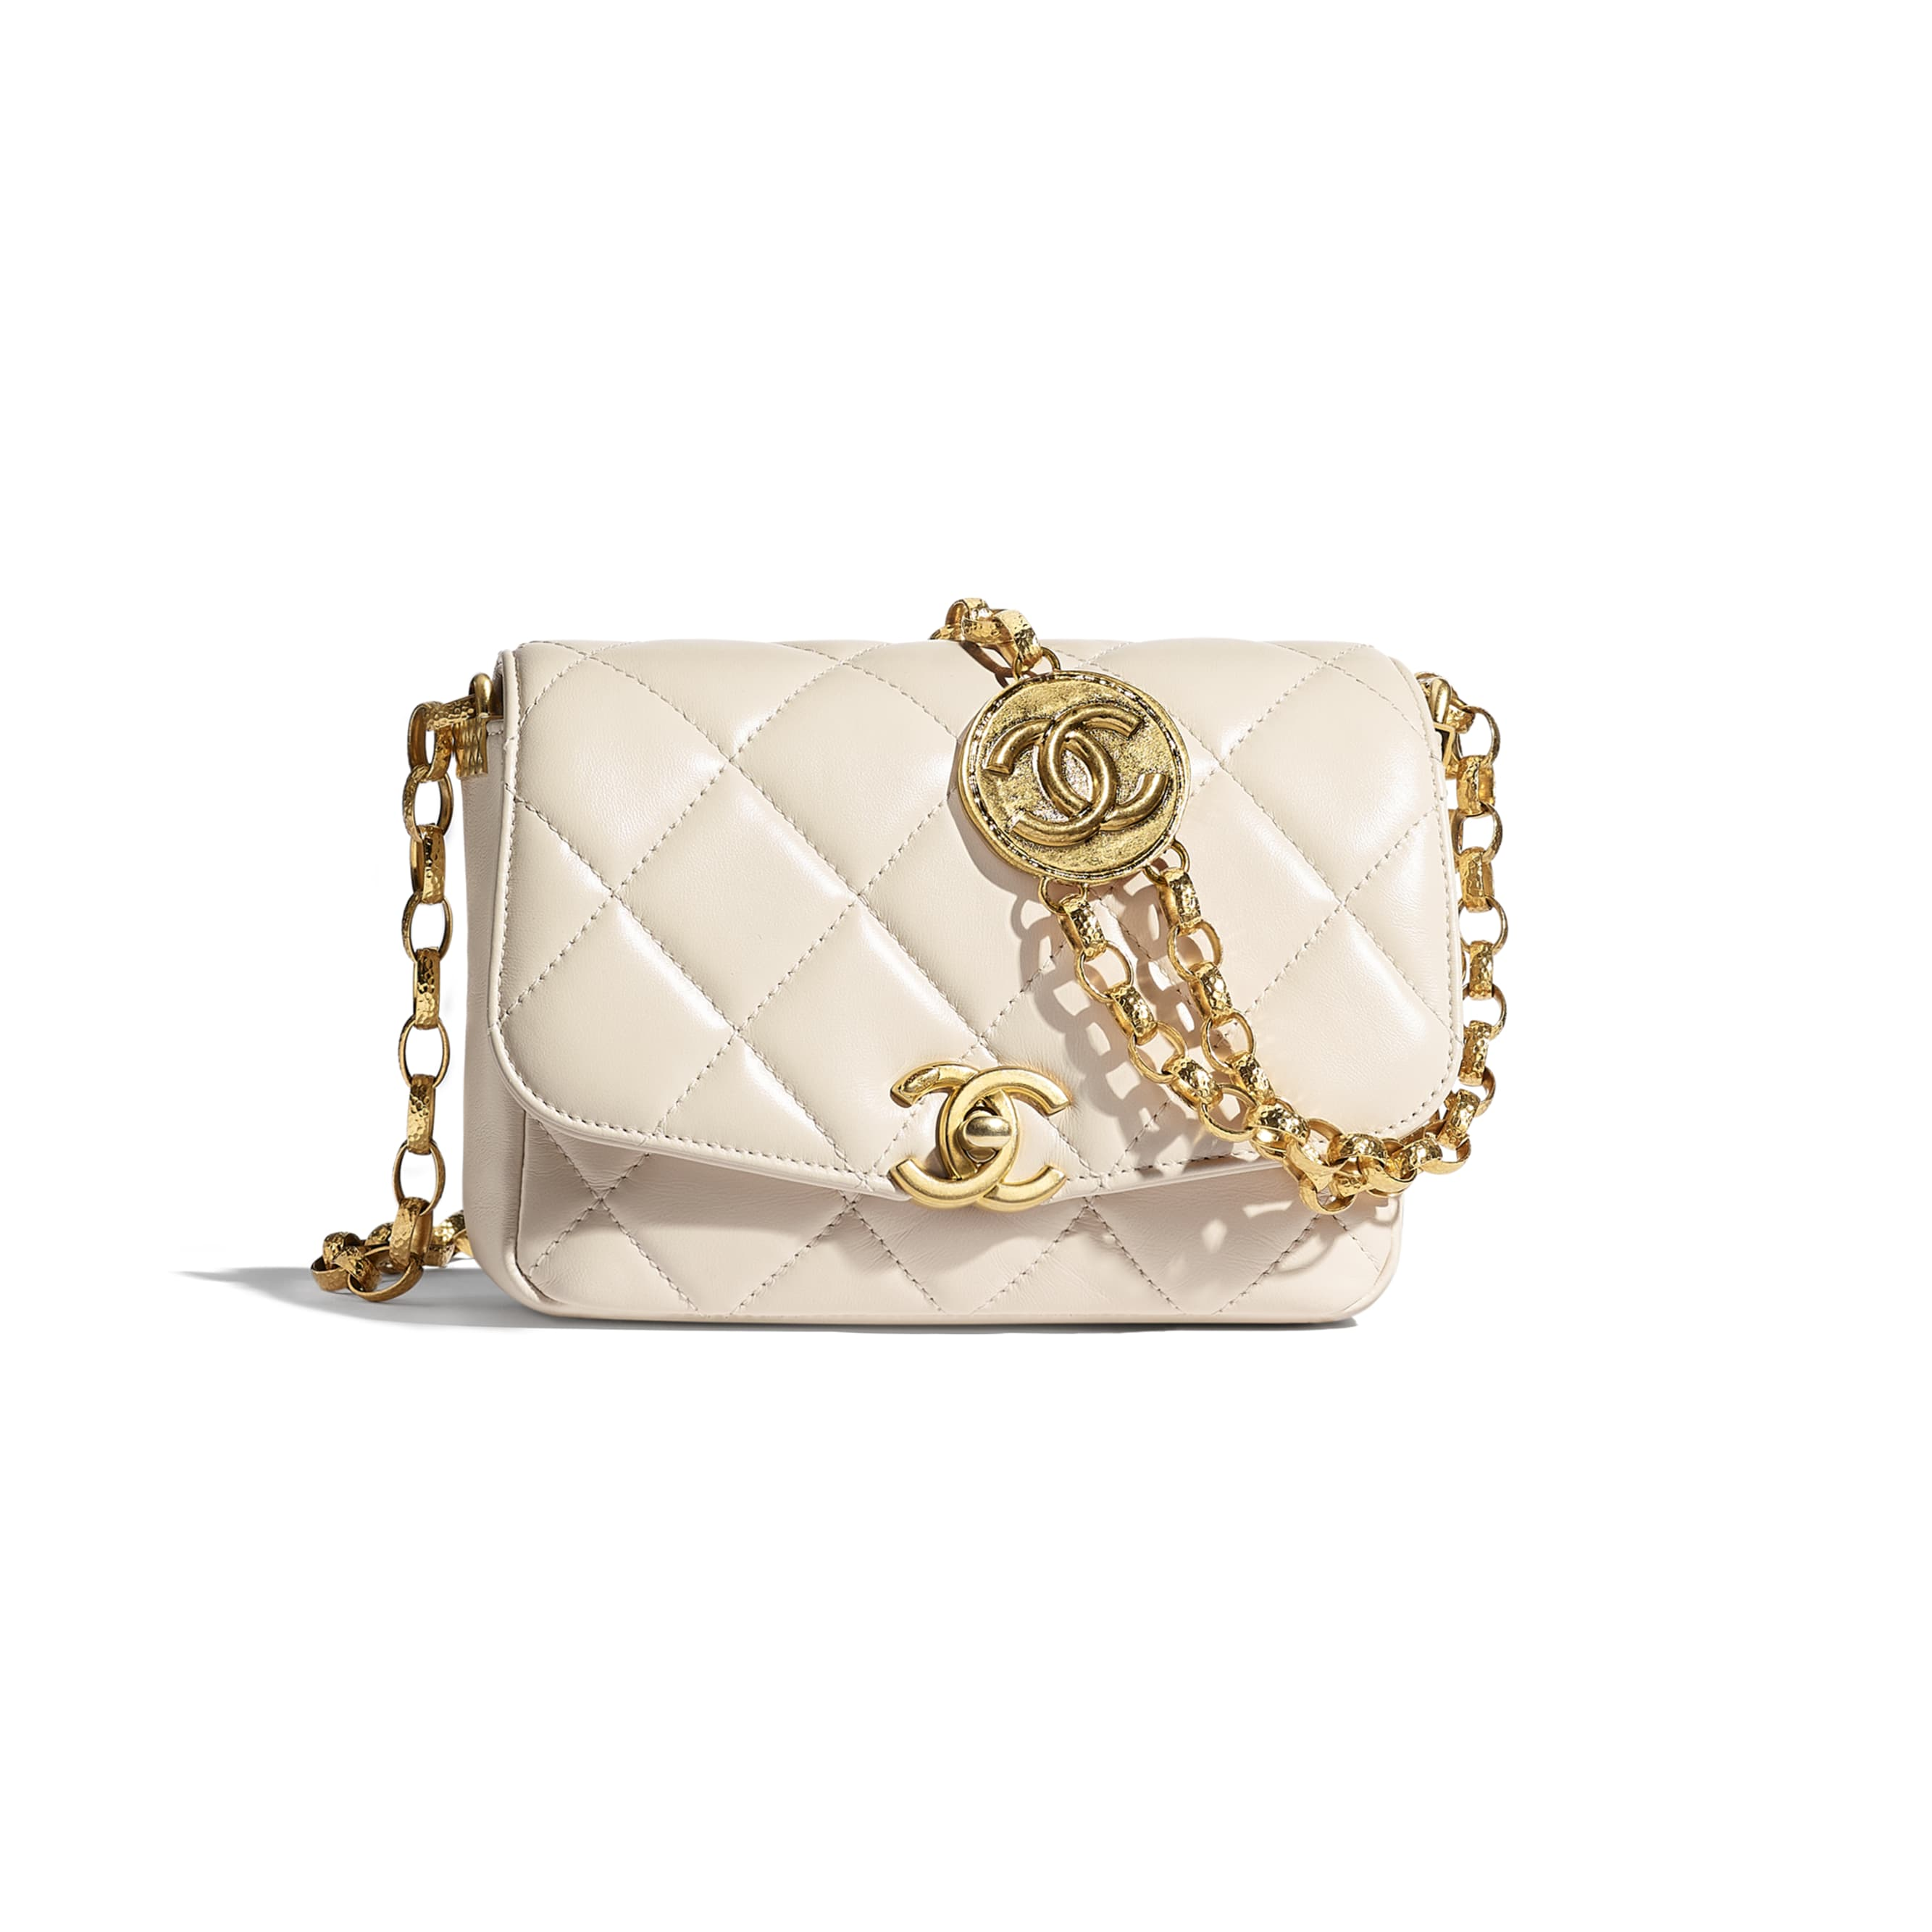 Small Flap Bag - Ecru - Lambskin - CHANEL - Default view - see standard sized version